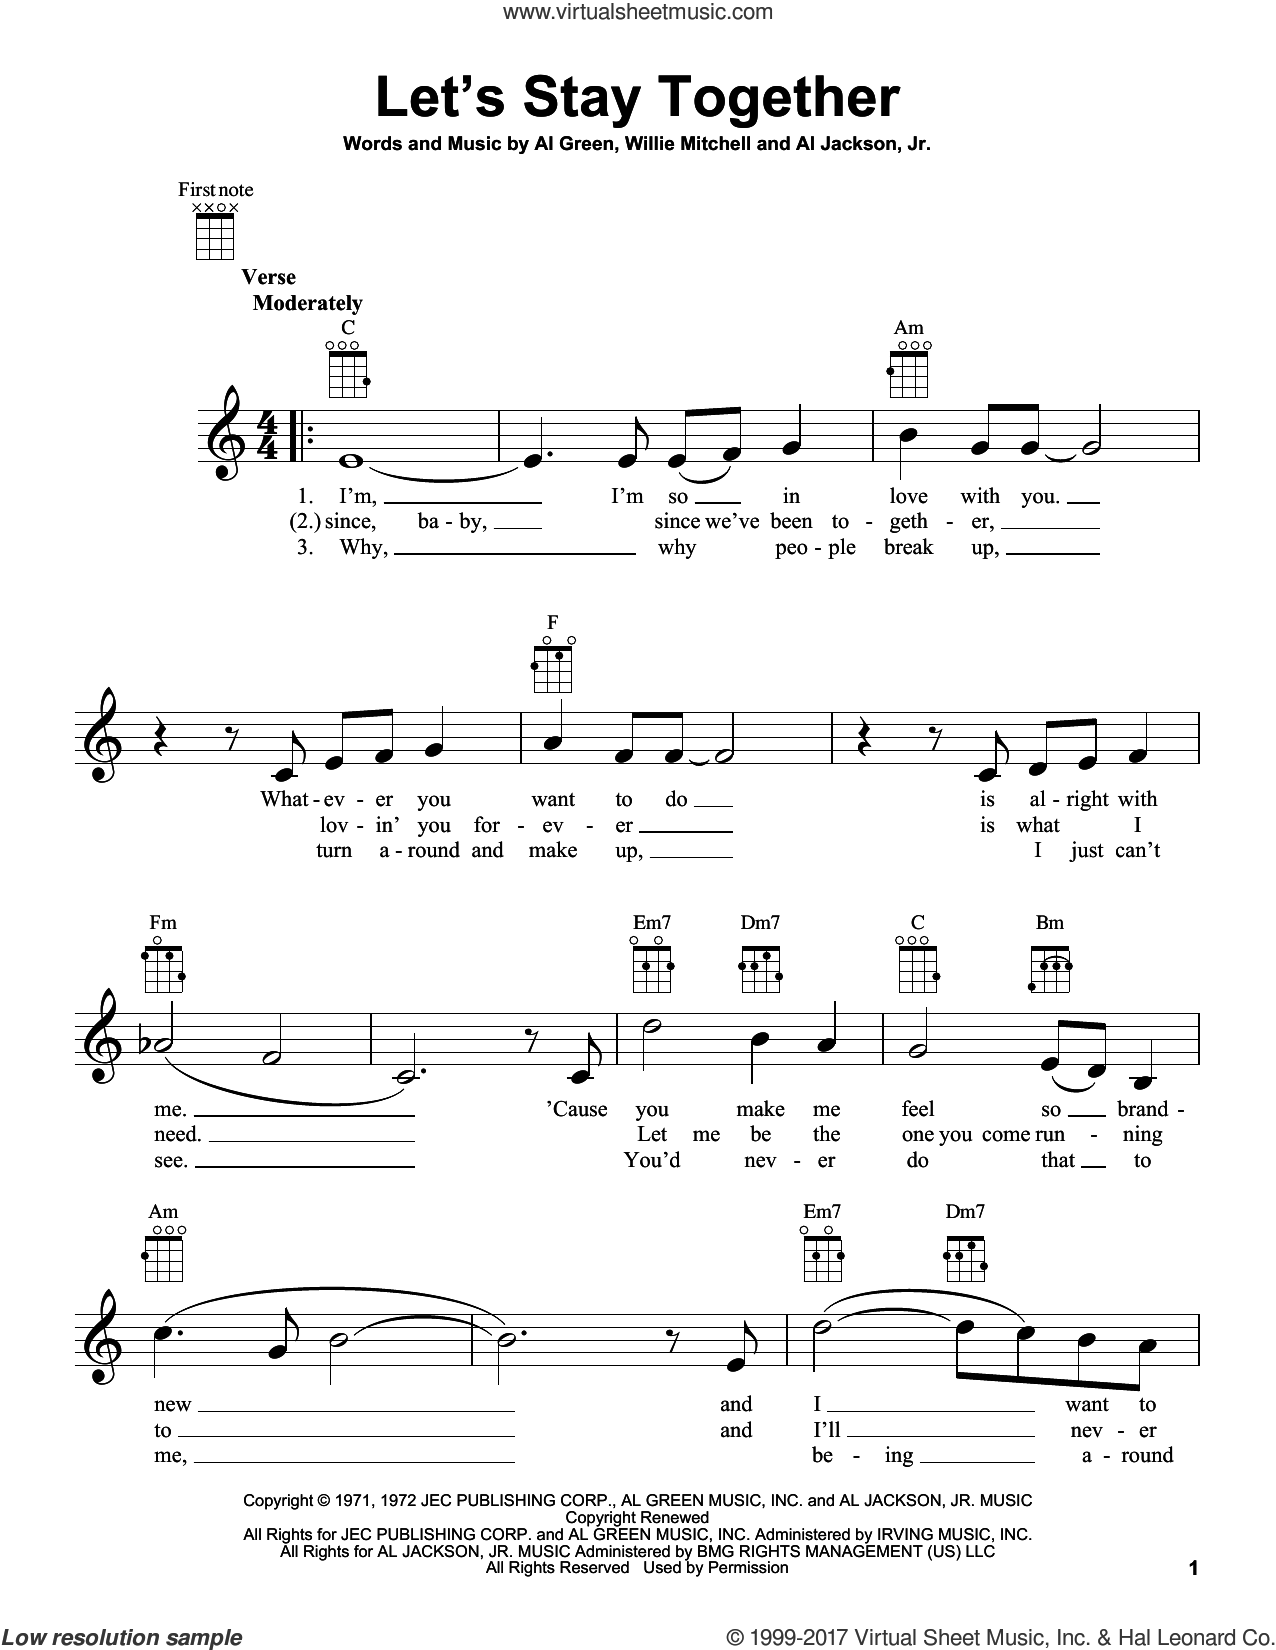 Let's Stay Together sheet music for ukulele by Al Green, Al Jackson, Jr. and Willie Mitchell, intermediate skill level